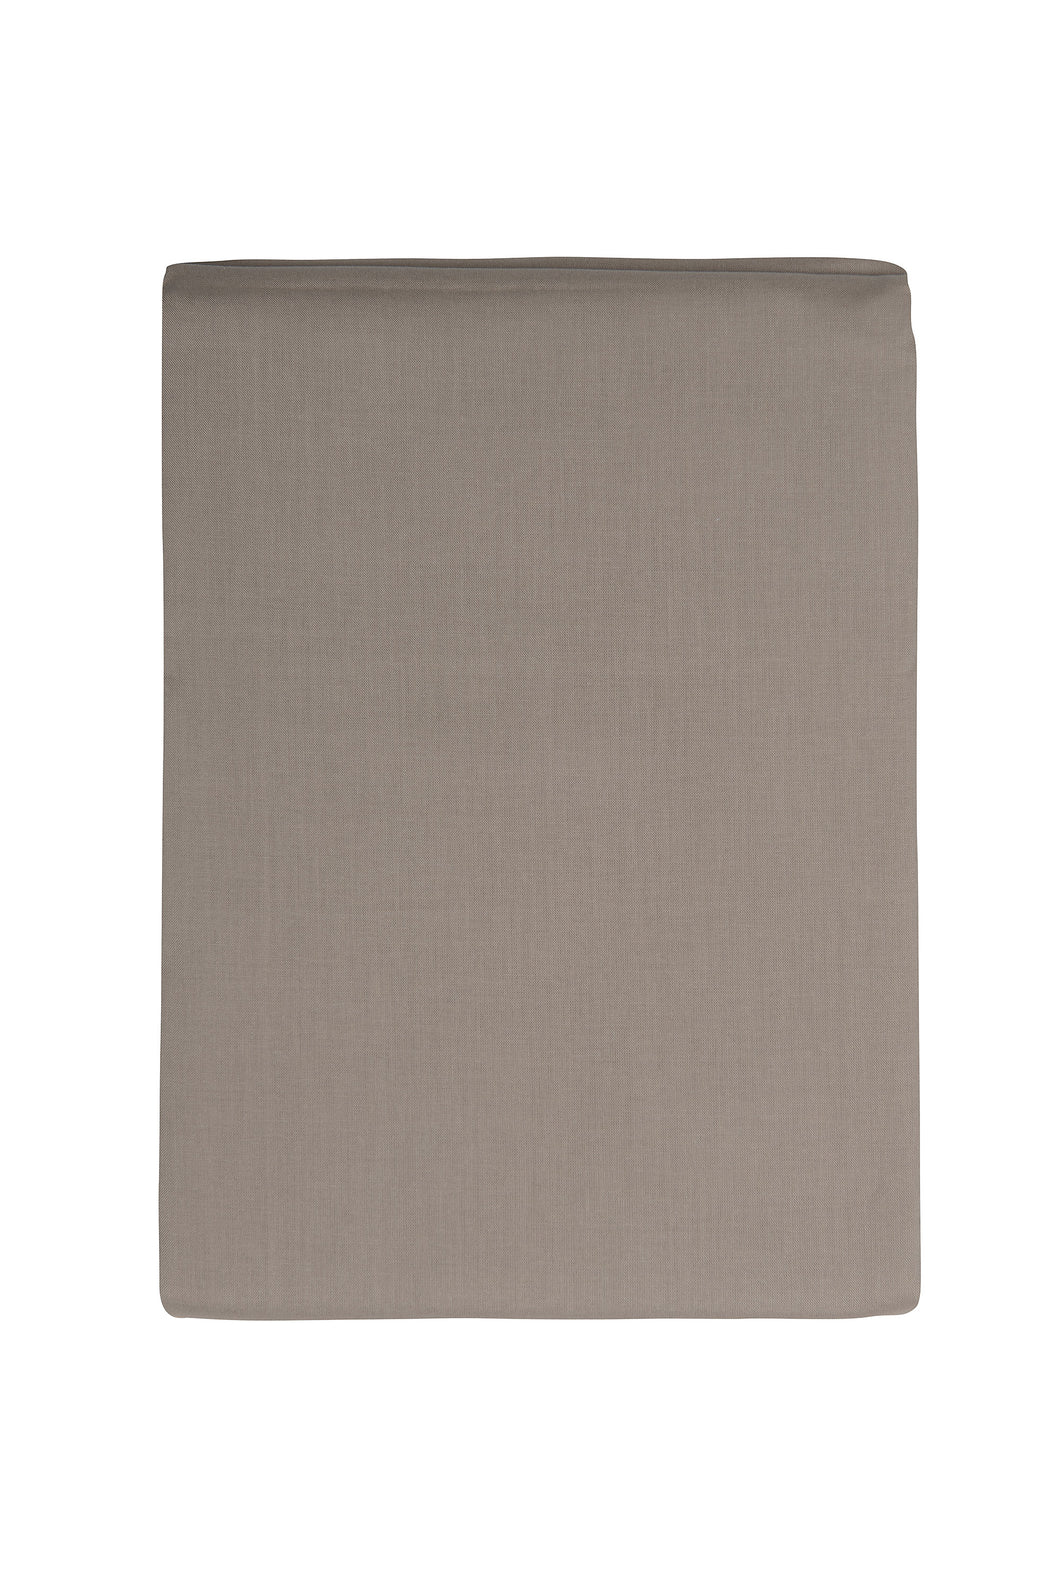 Høie | Jersey stretch sheet | Grey-beige | Flame retardant